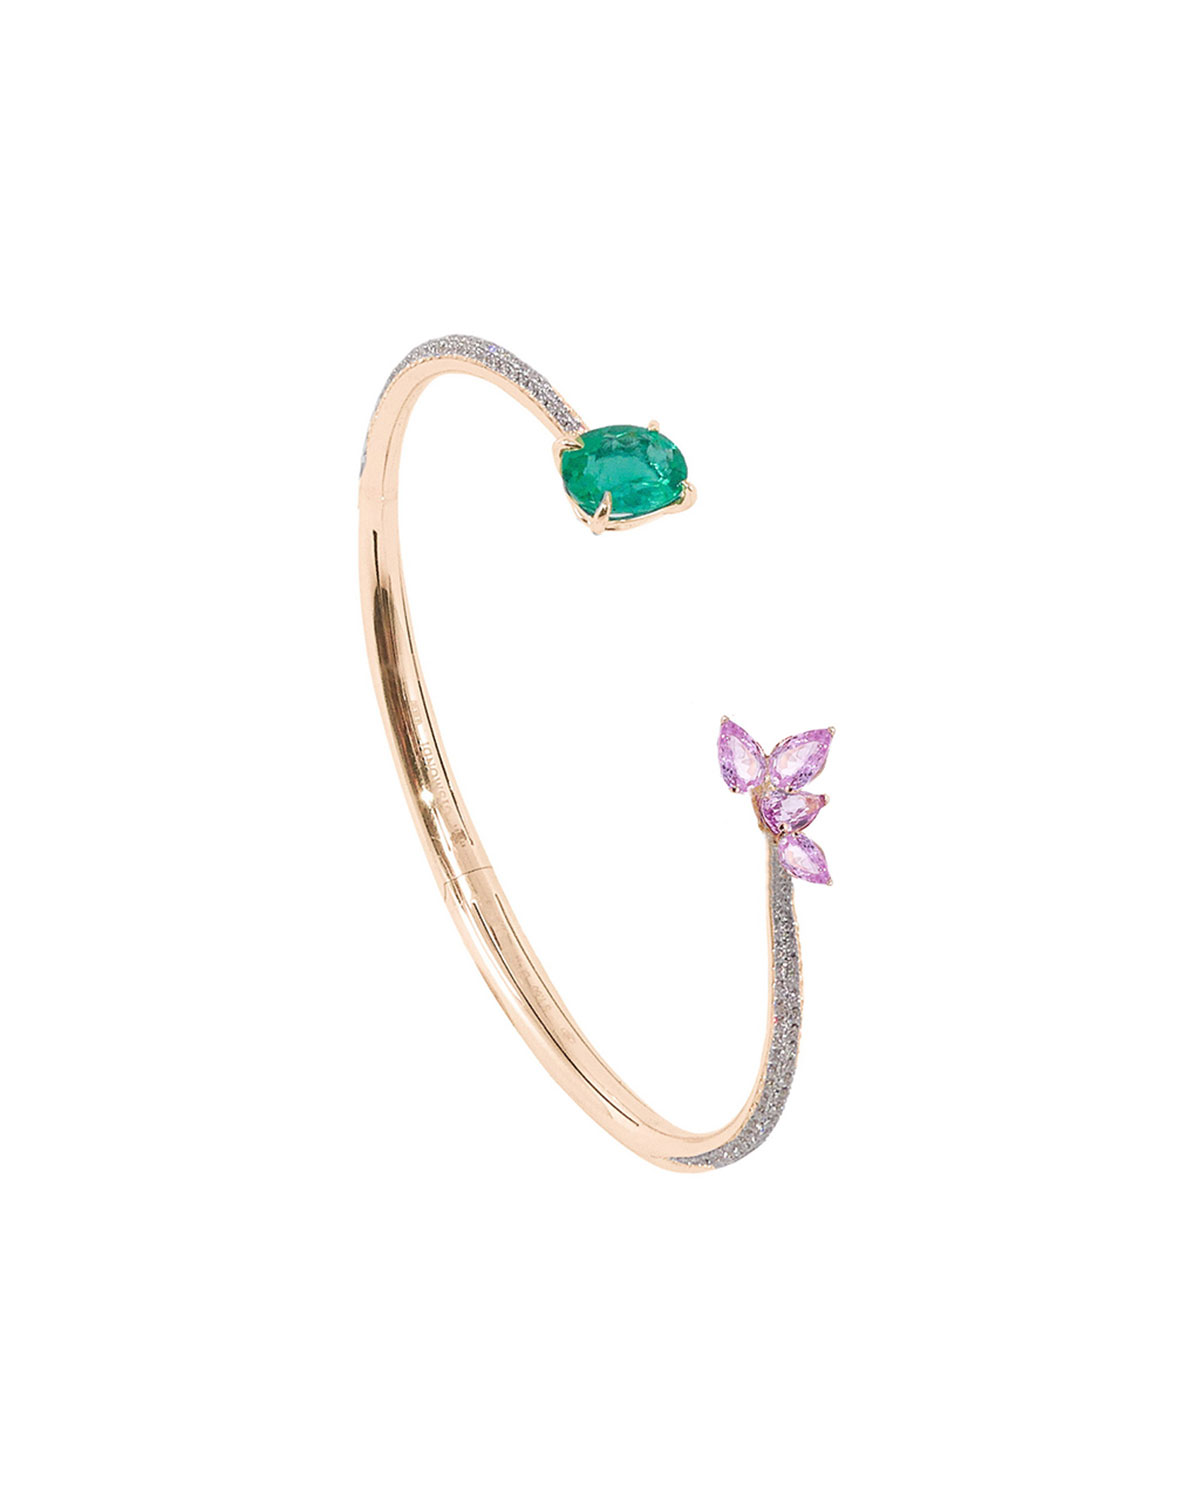 18k Rose Gold Open Emerald-End Bracelet with Diamonds and Sapphires